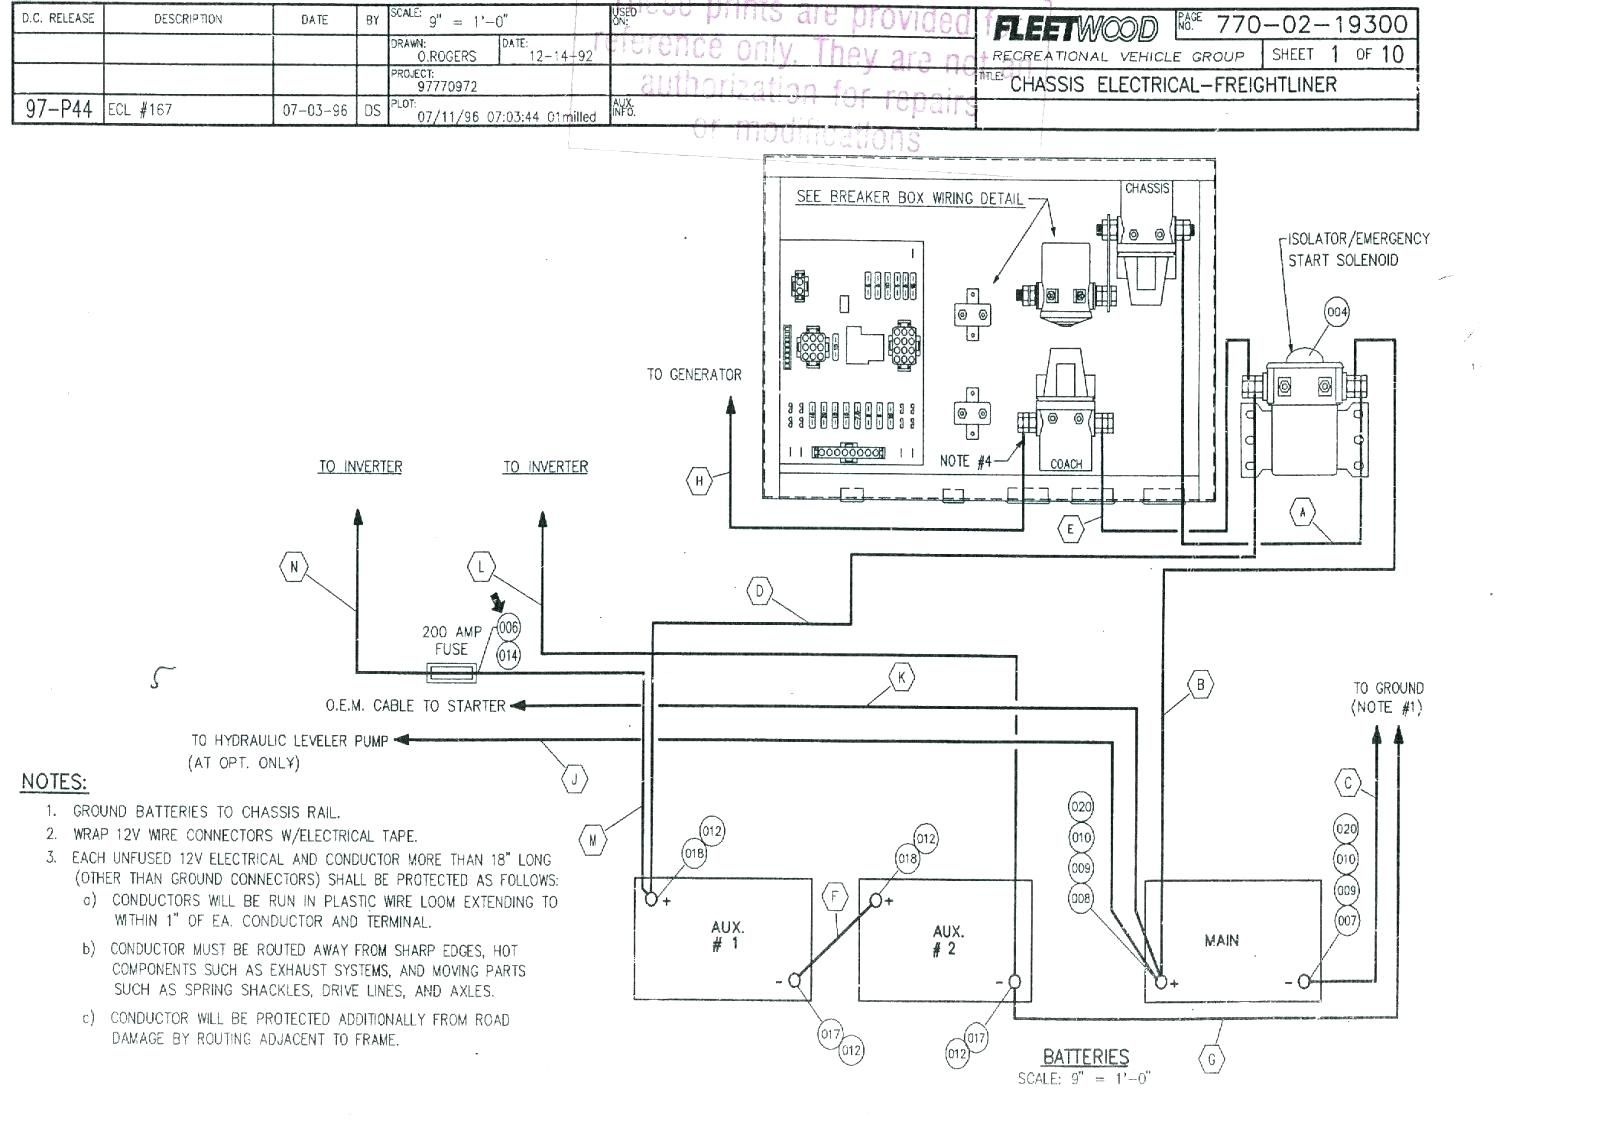 winnebago wiring diagram pictures wiring diagram wiring diagram chieftain  net 1984 winnebago chieftain wiring diagram | Freightliner, Diagram,  Electrical systemPinterest